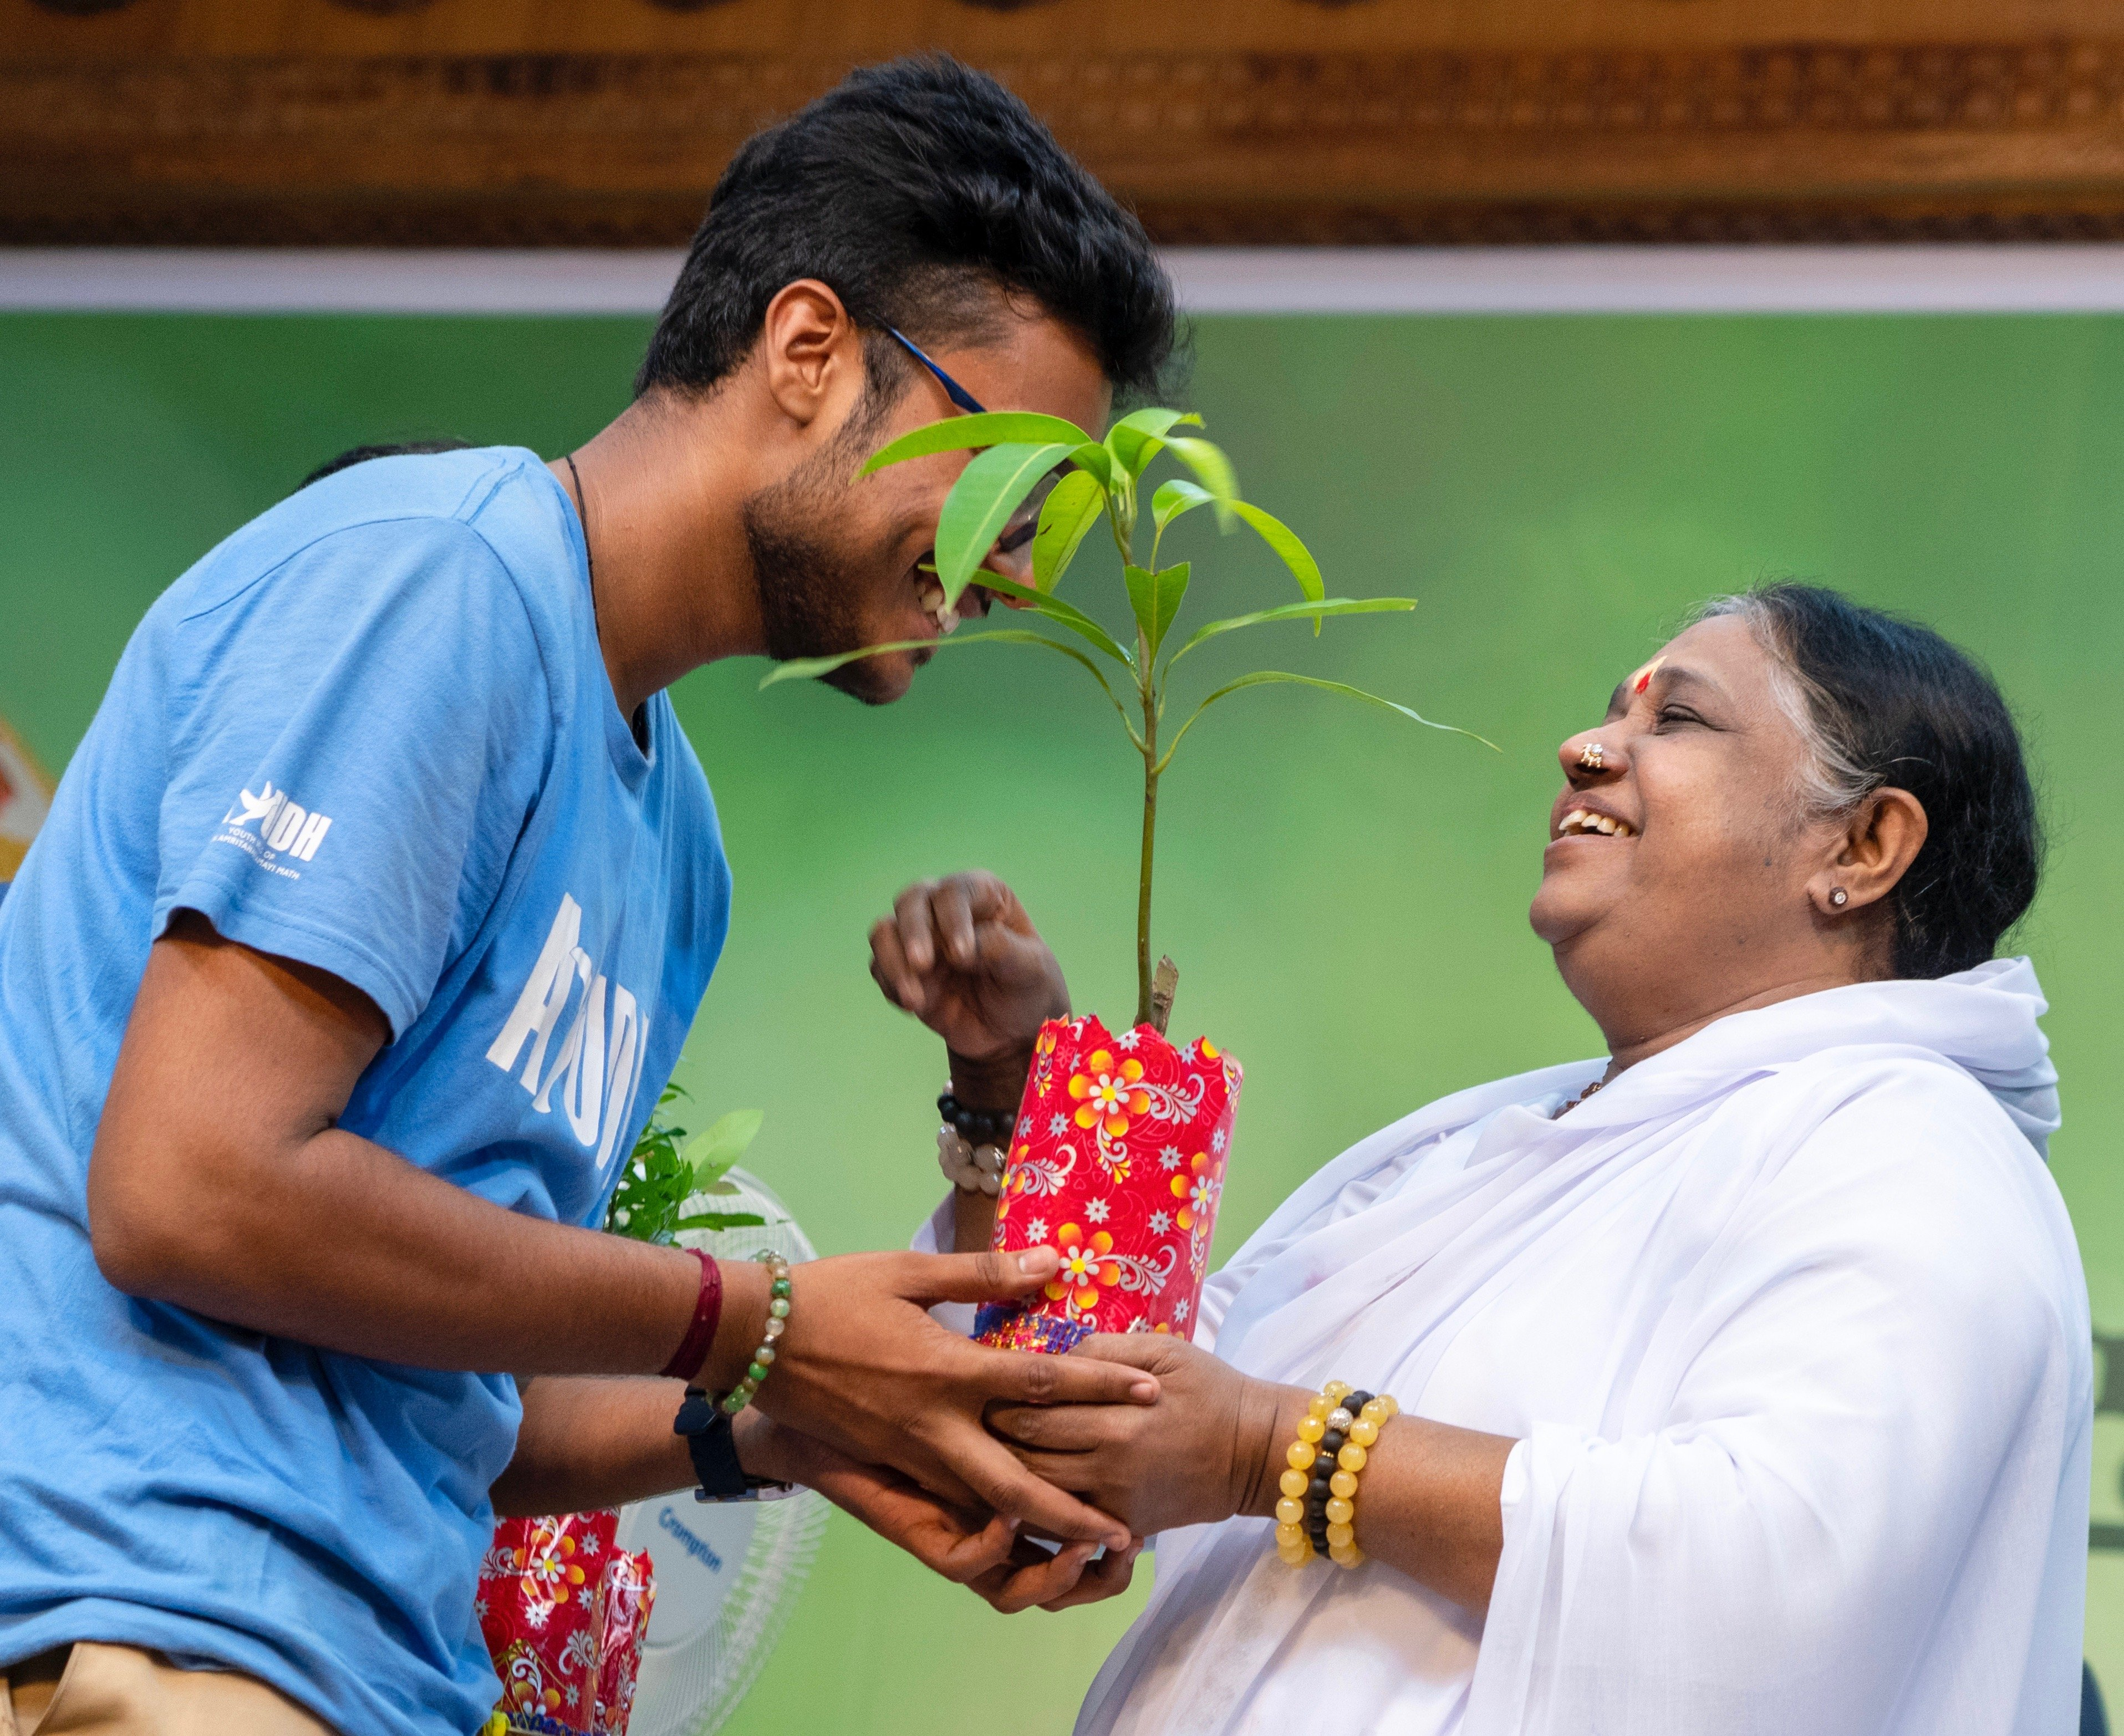 Photo of Amma distributing sapling to youth